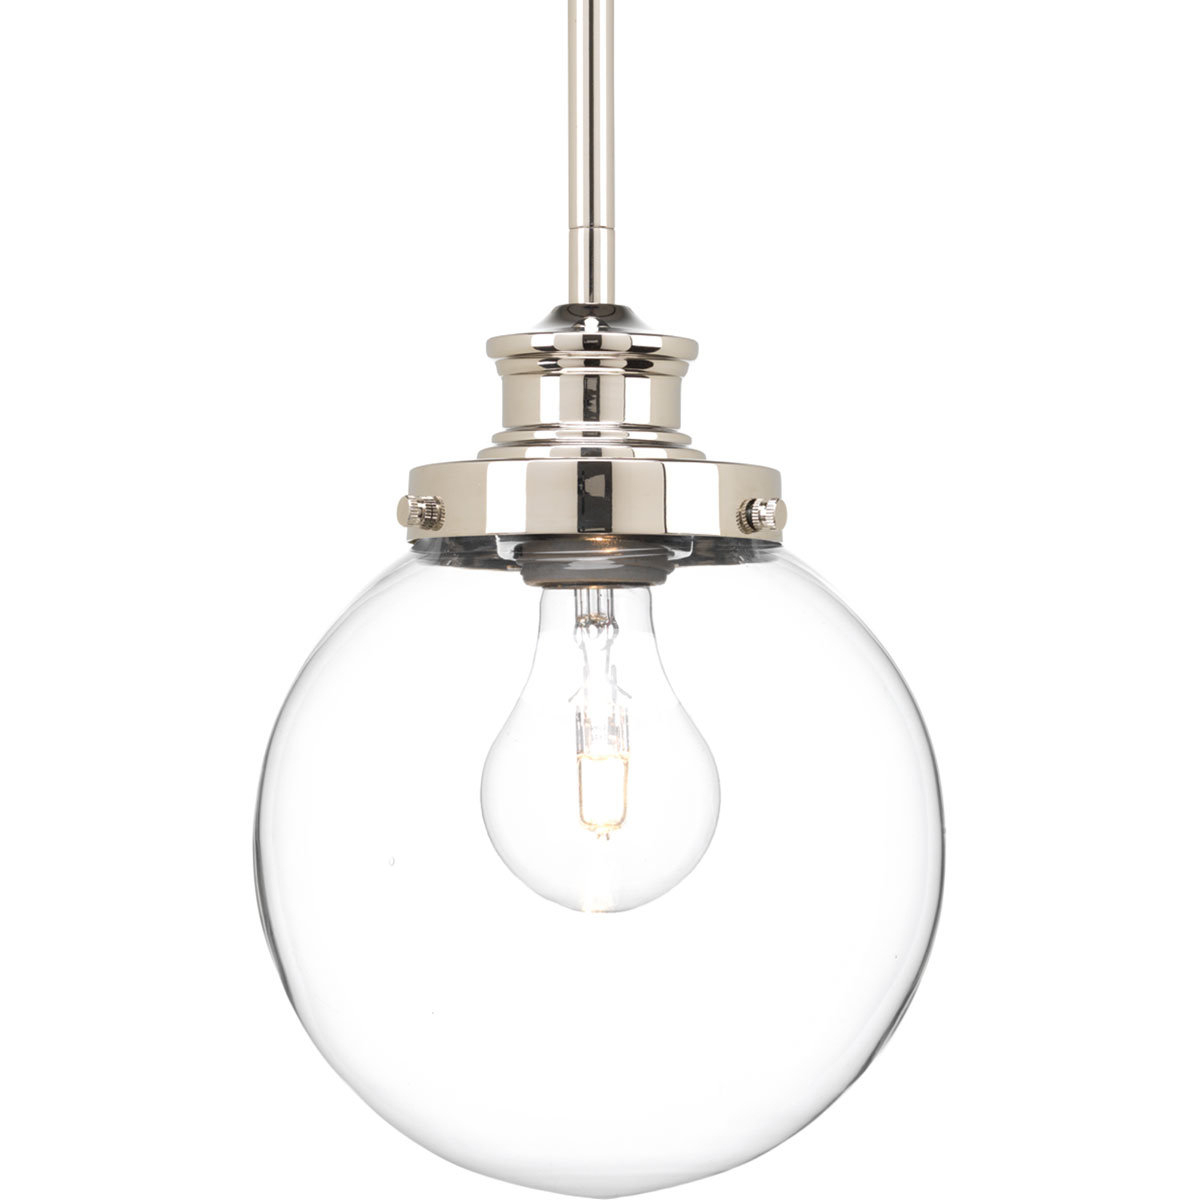 Popular Irwin 1 Light Single Globe Pendants Throughout Zipcode Design Cayden 1 Light Single Globe Pendant (View 16 of 20)